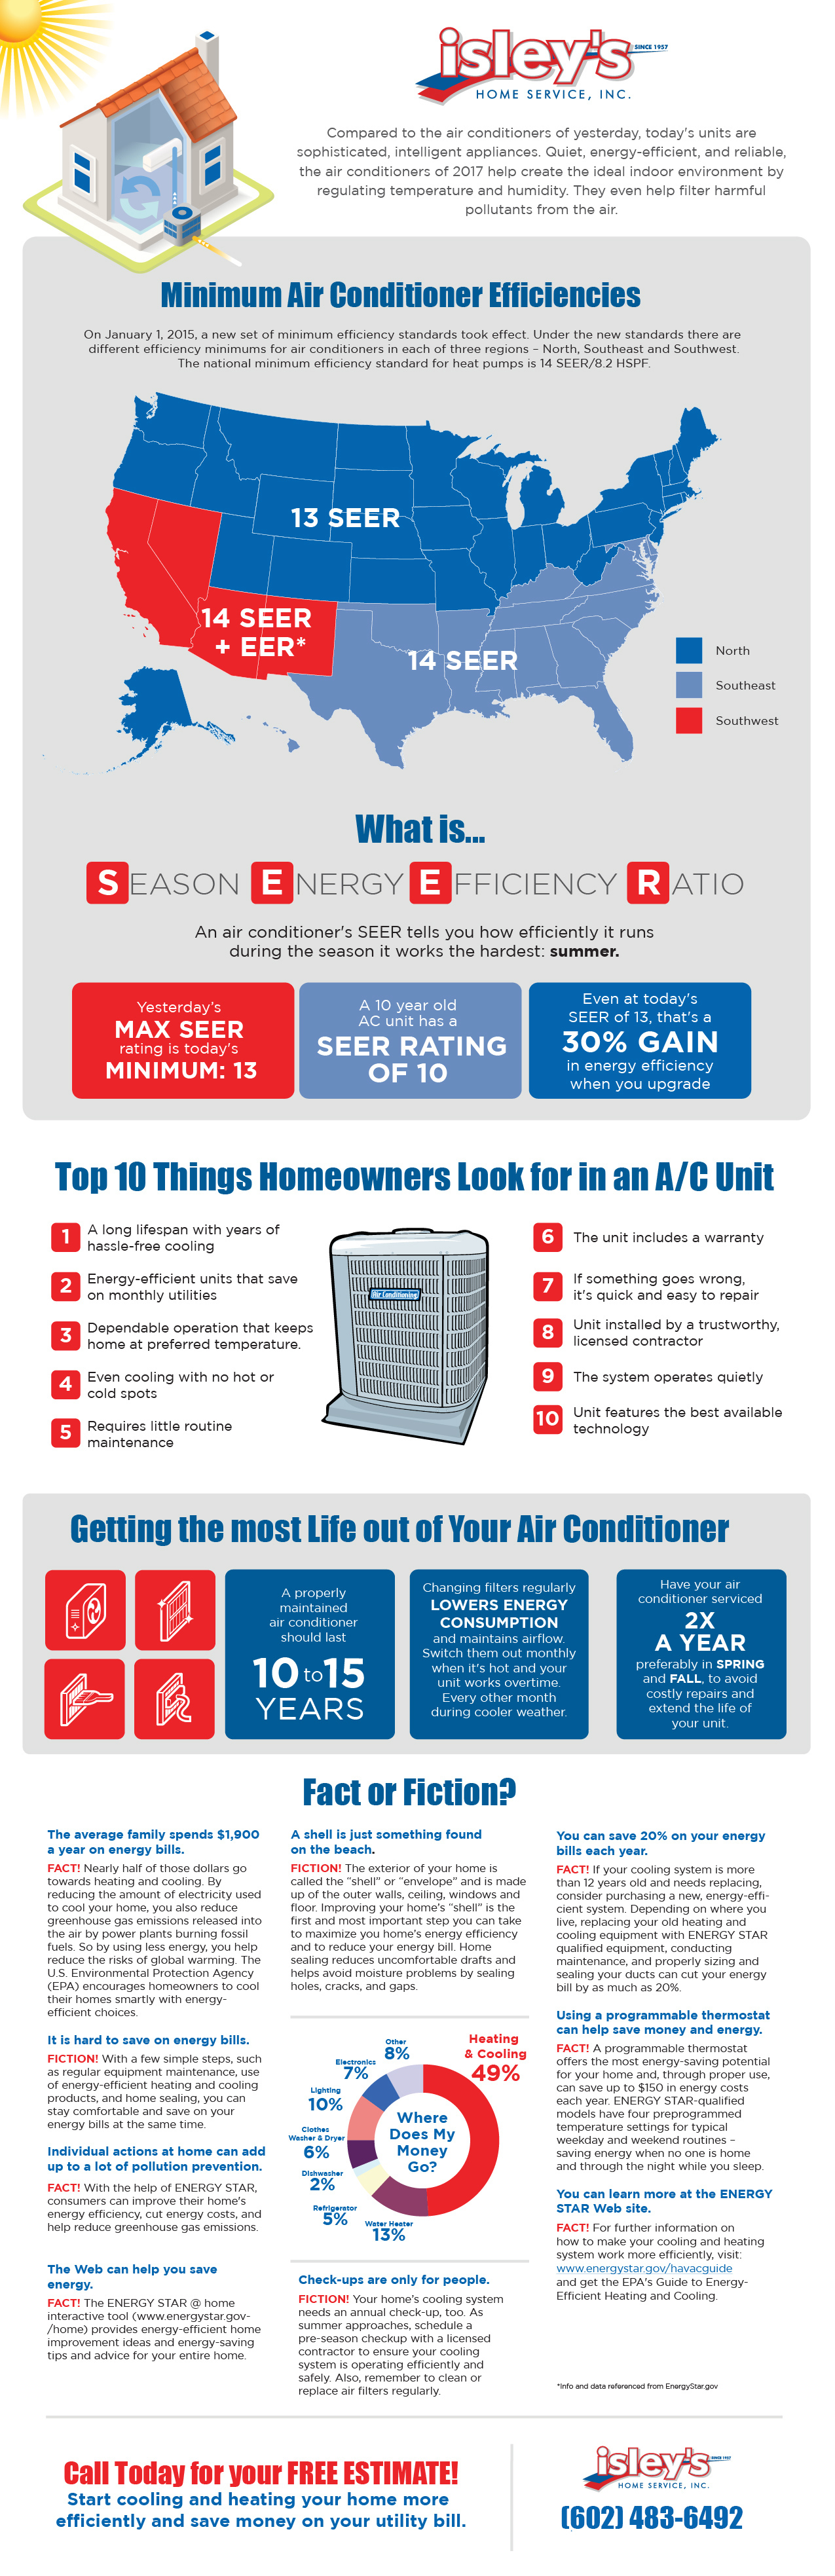 Isley's Air Condition Facts